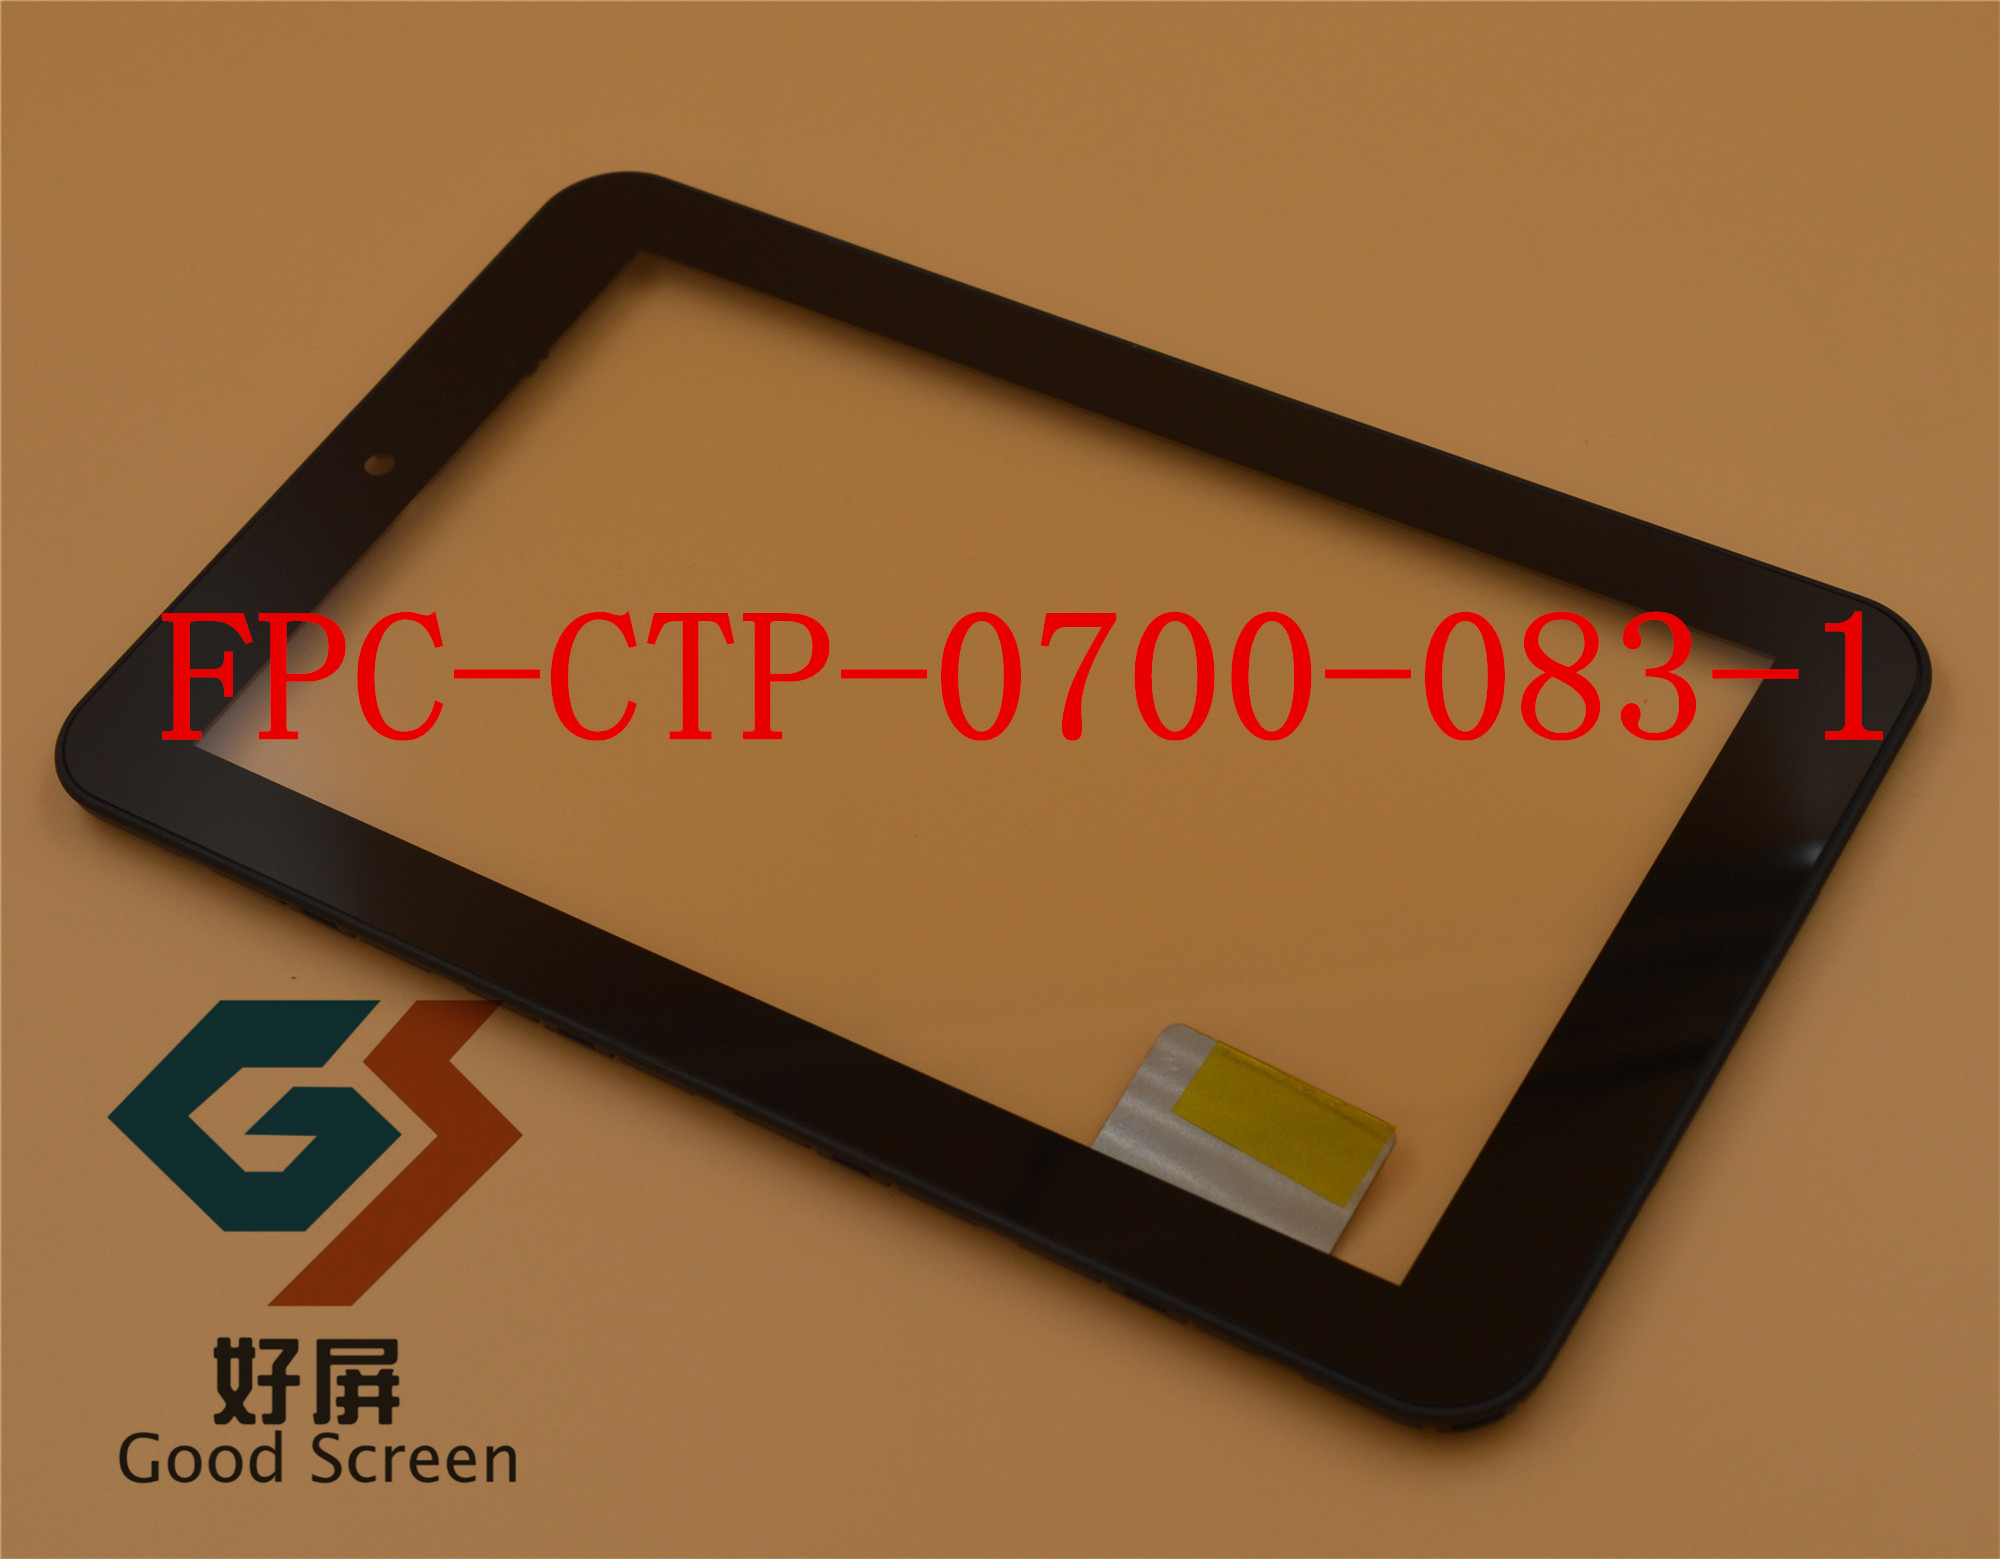 + Shell FPC-CTP-0700-083-1 7